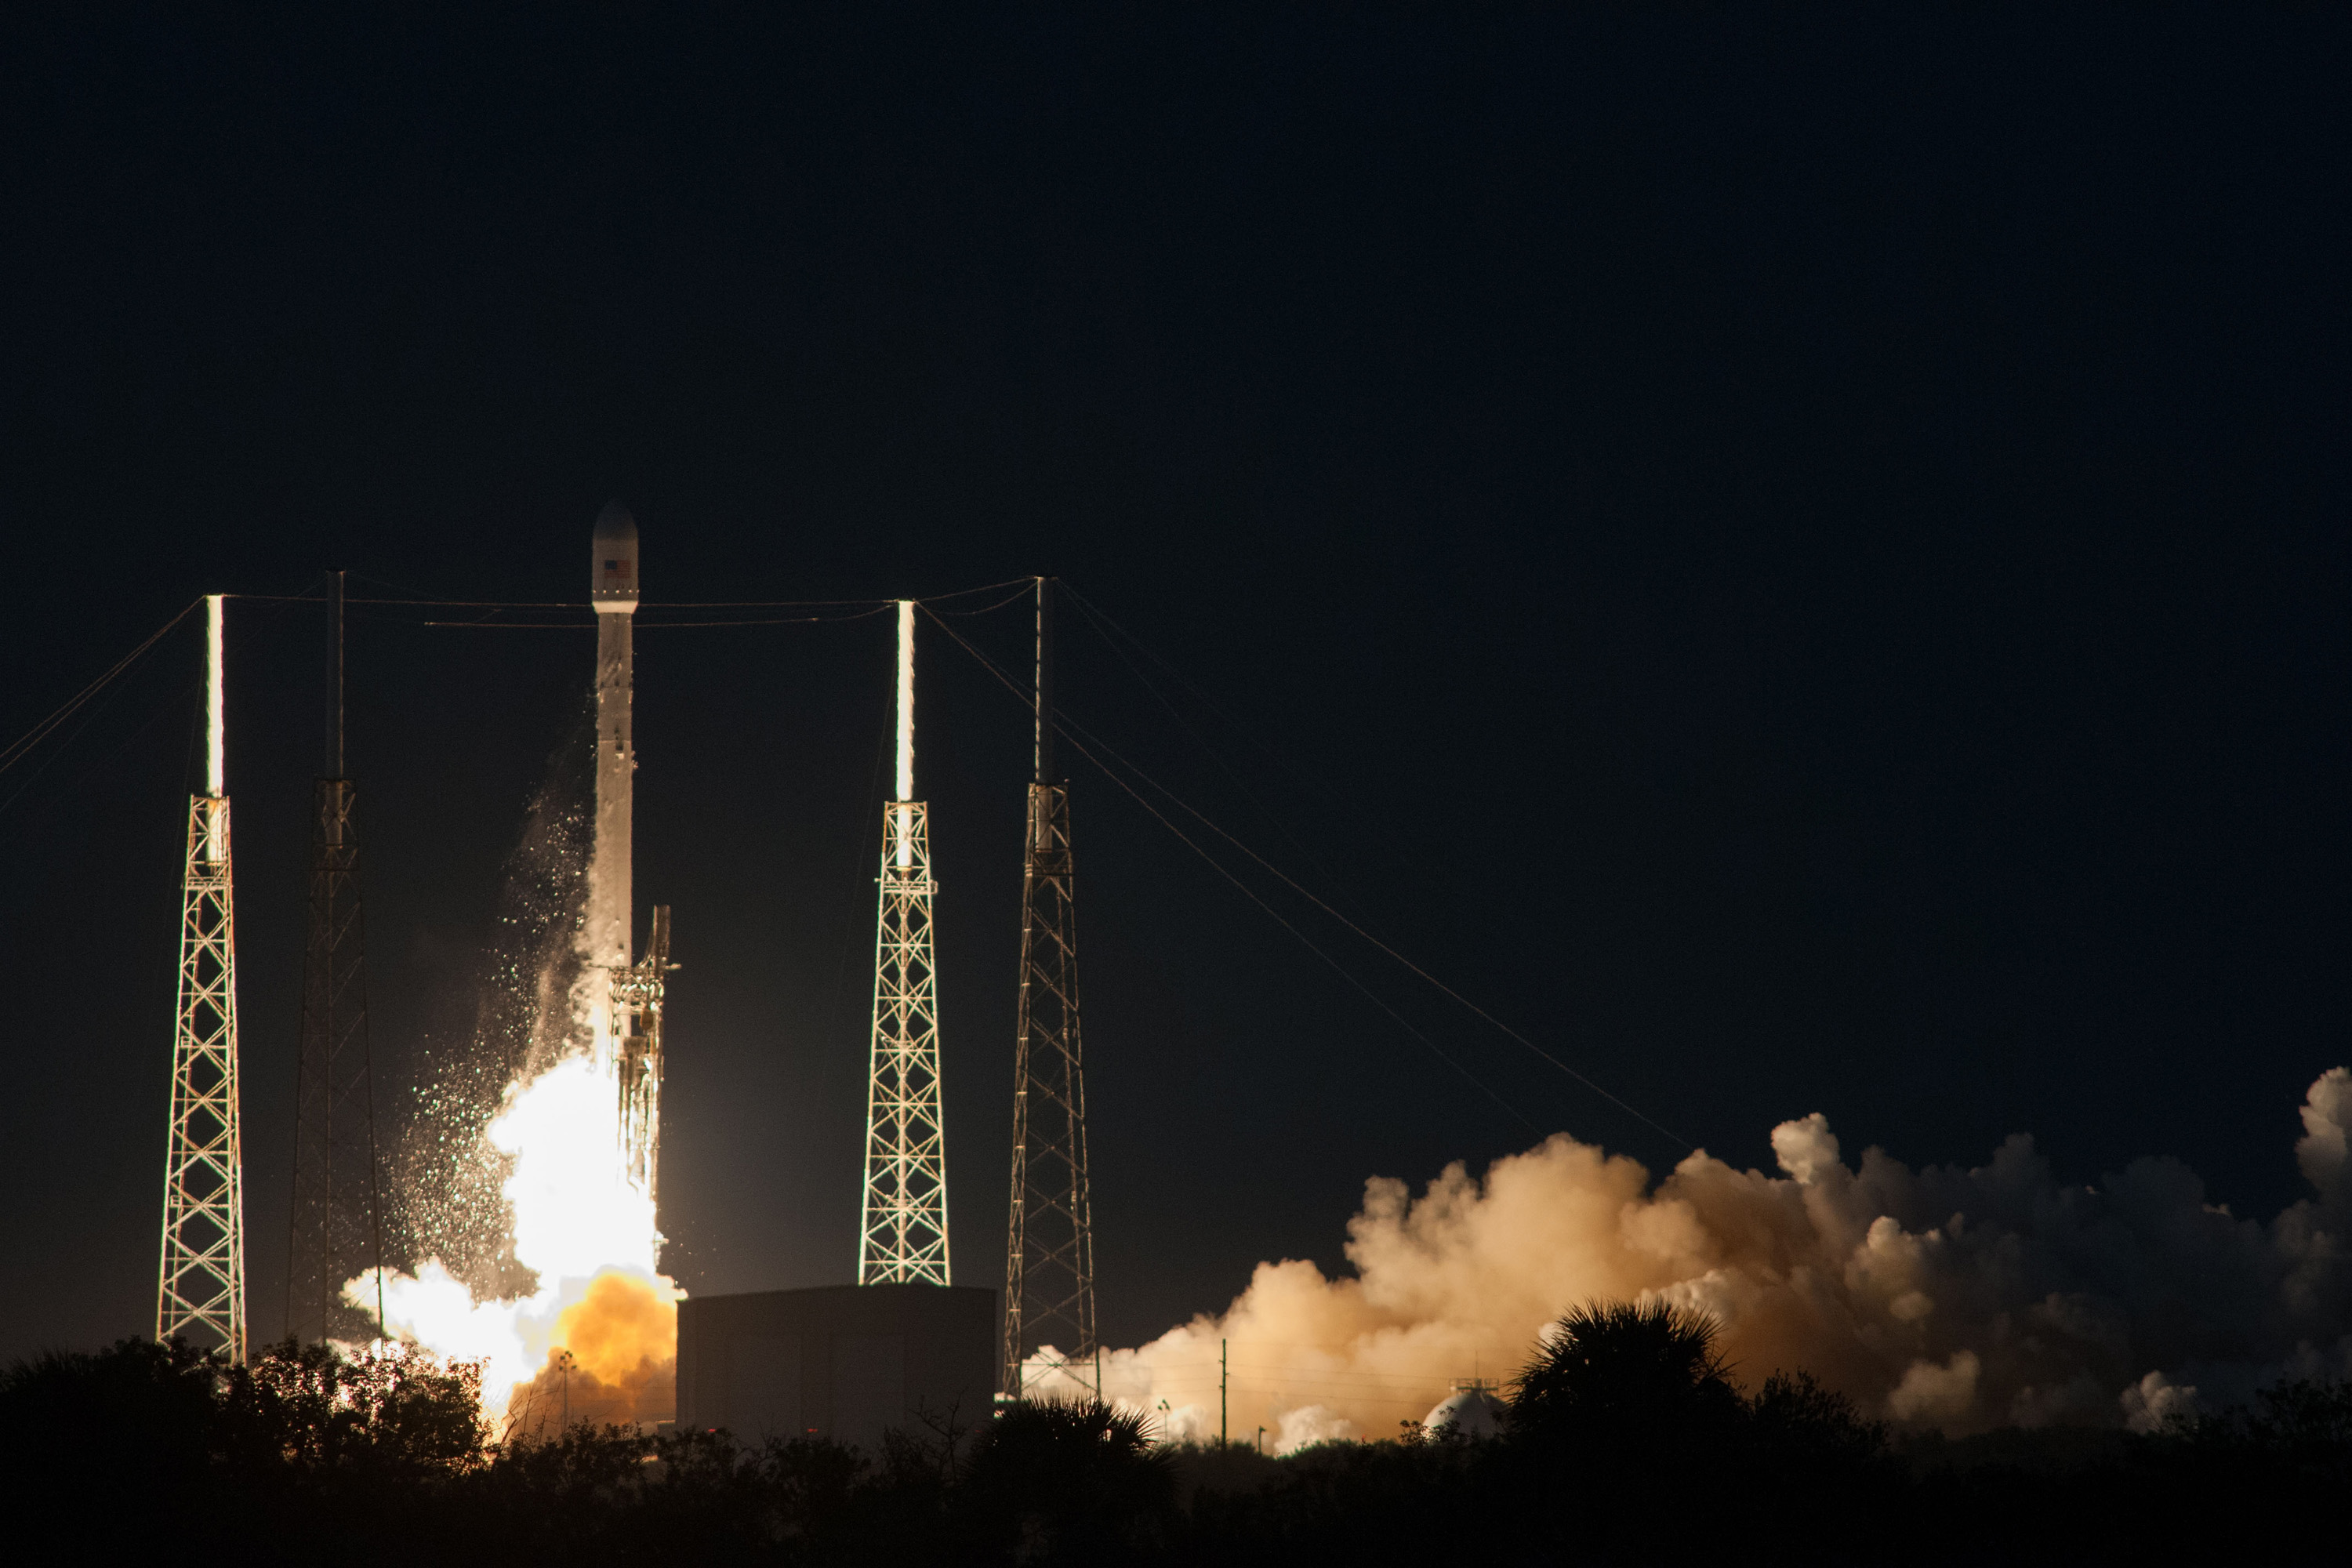 Falcon 9 and SES-8 liftoff from SpaceX's launch pad at Cape Canaveral. Credit: SpaceX